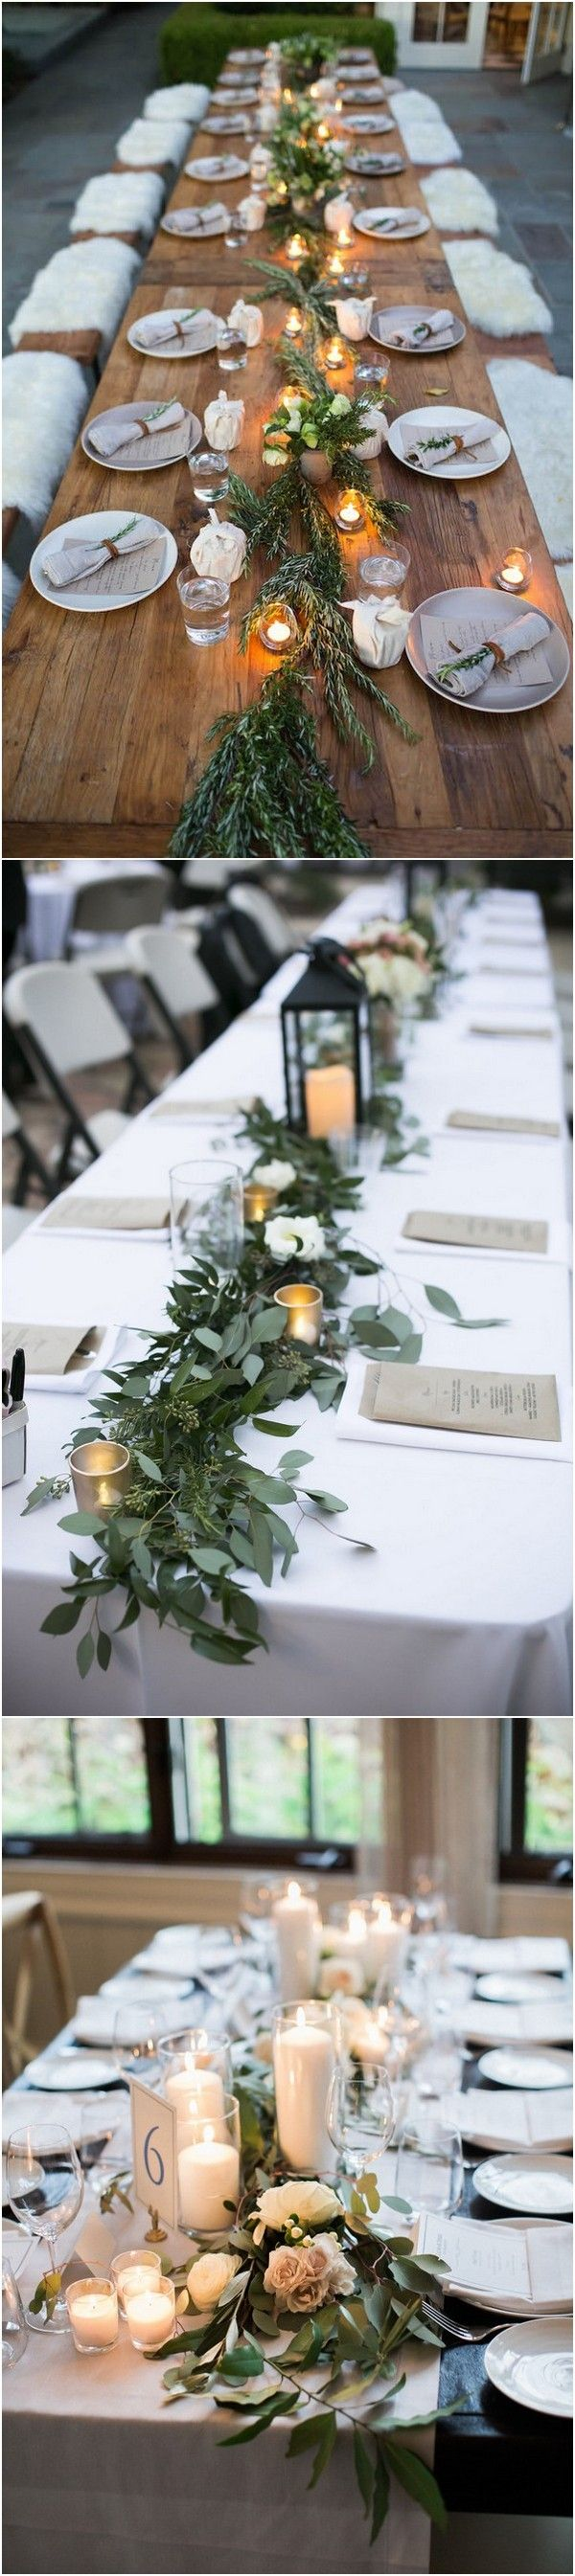 decorations for wedding tables. Rustic Wedding Table Decoration Ideas With Candles Decorations For Tables L